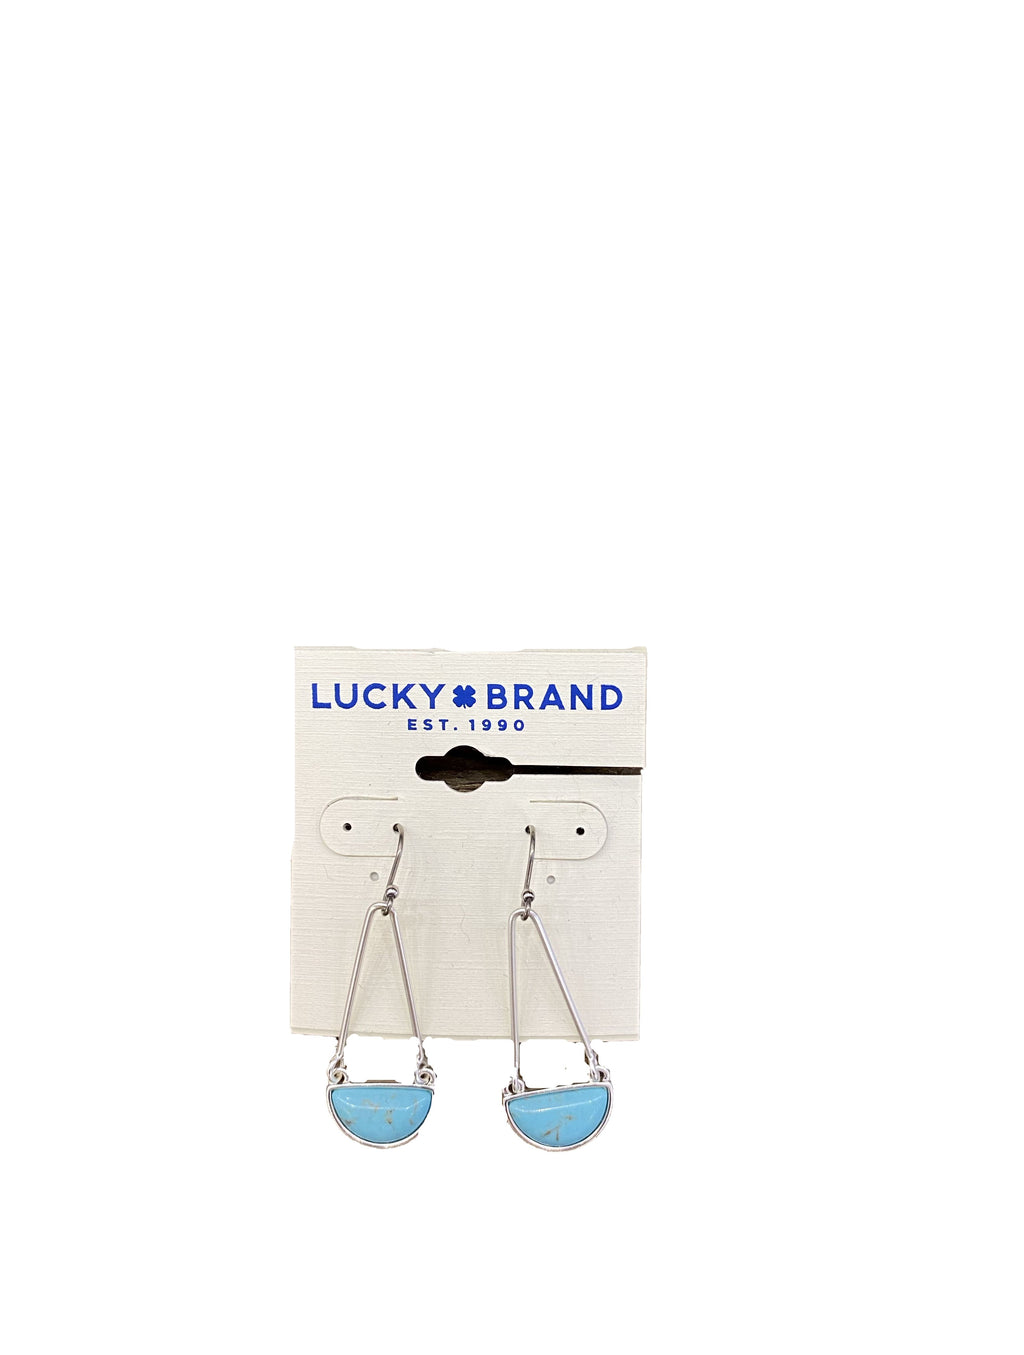 Lucky Brand Dangle Earrings in Turquoise/Silver